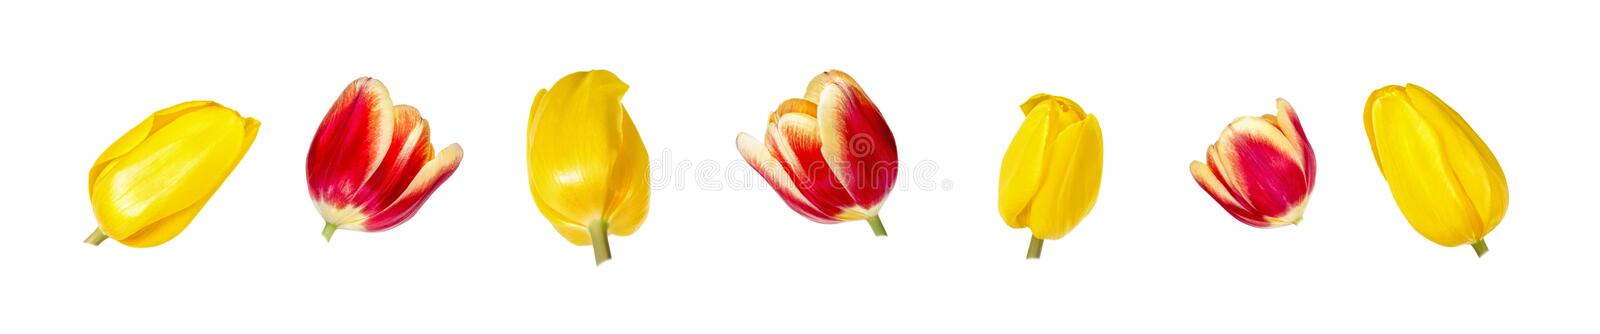 Set of seven beautiful red and yellow tulip flower heads isolated on white background. stock photos